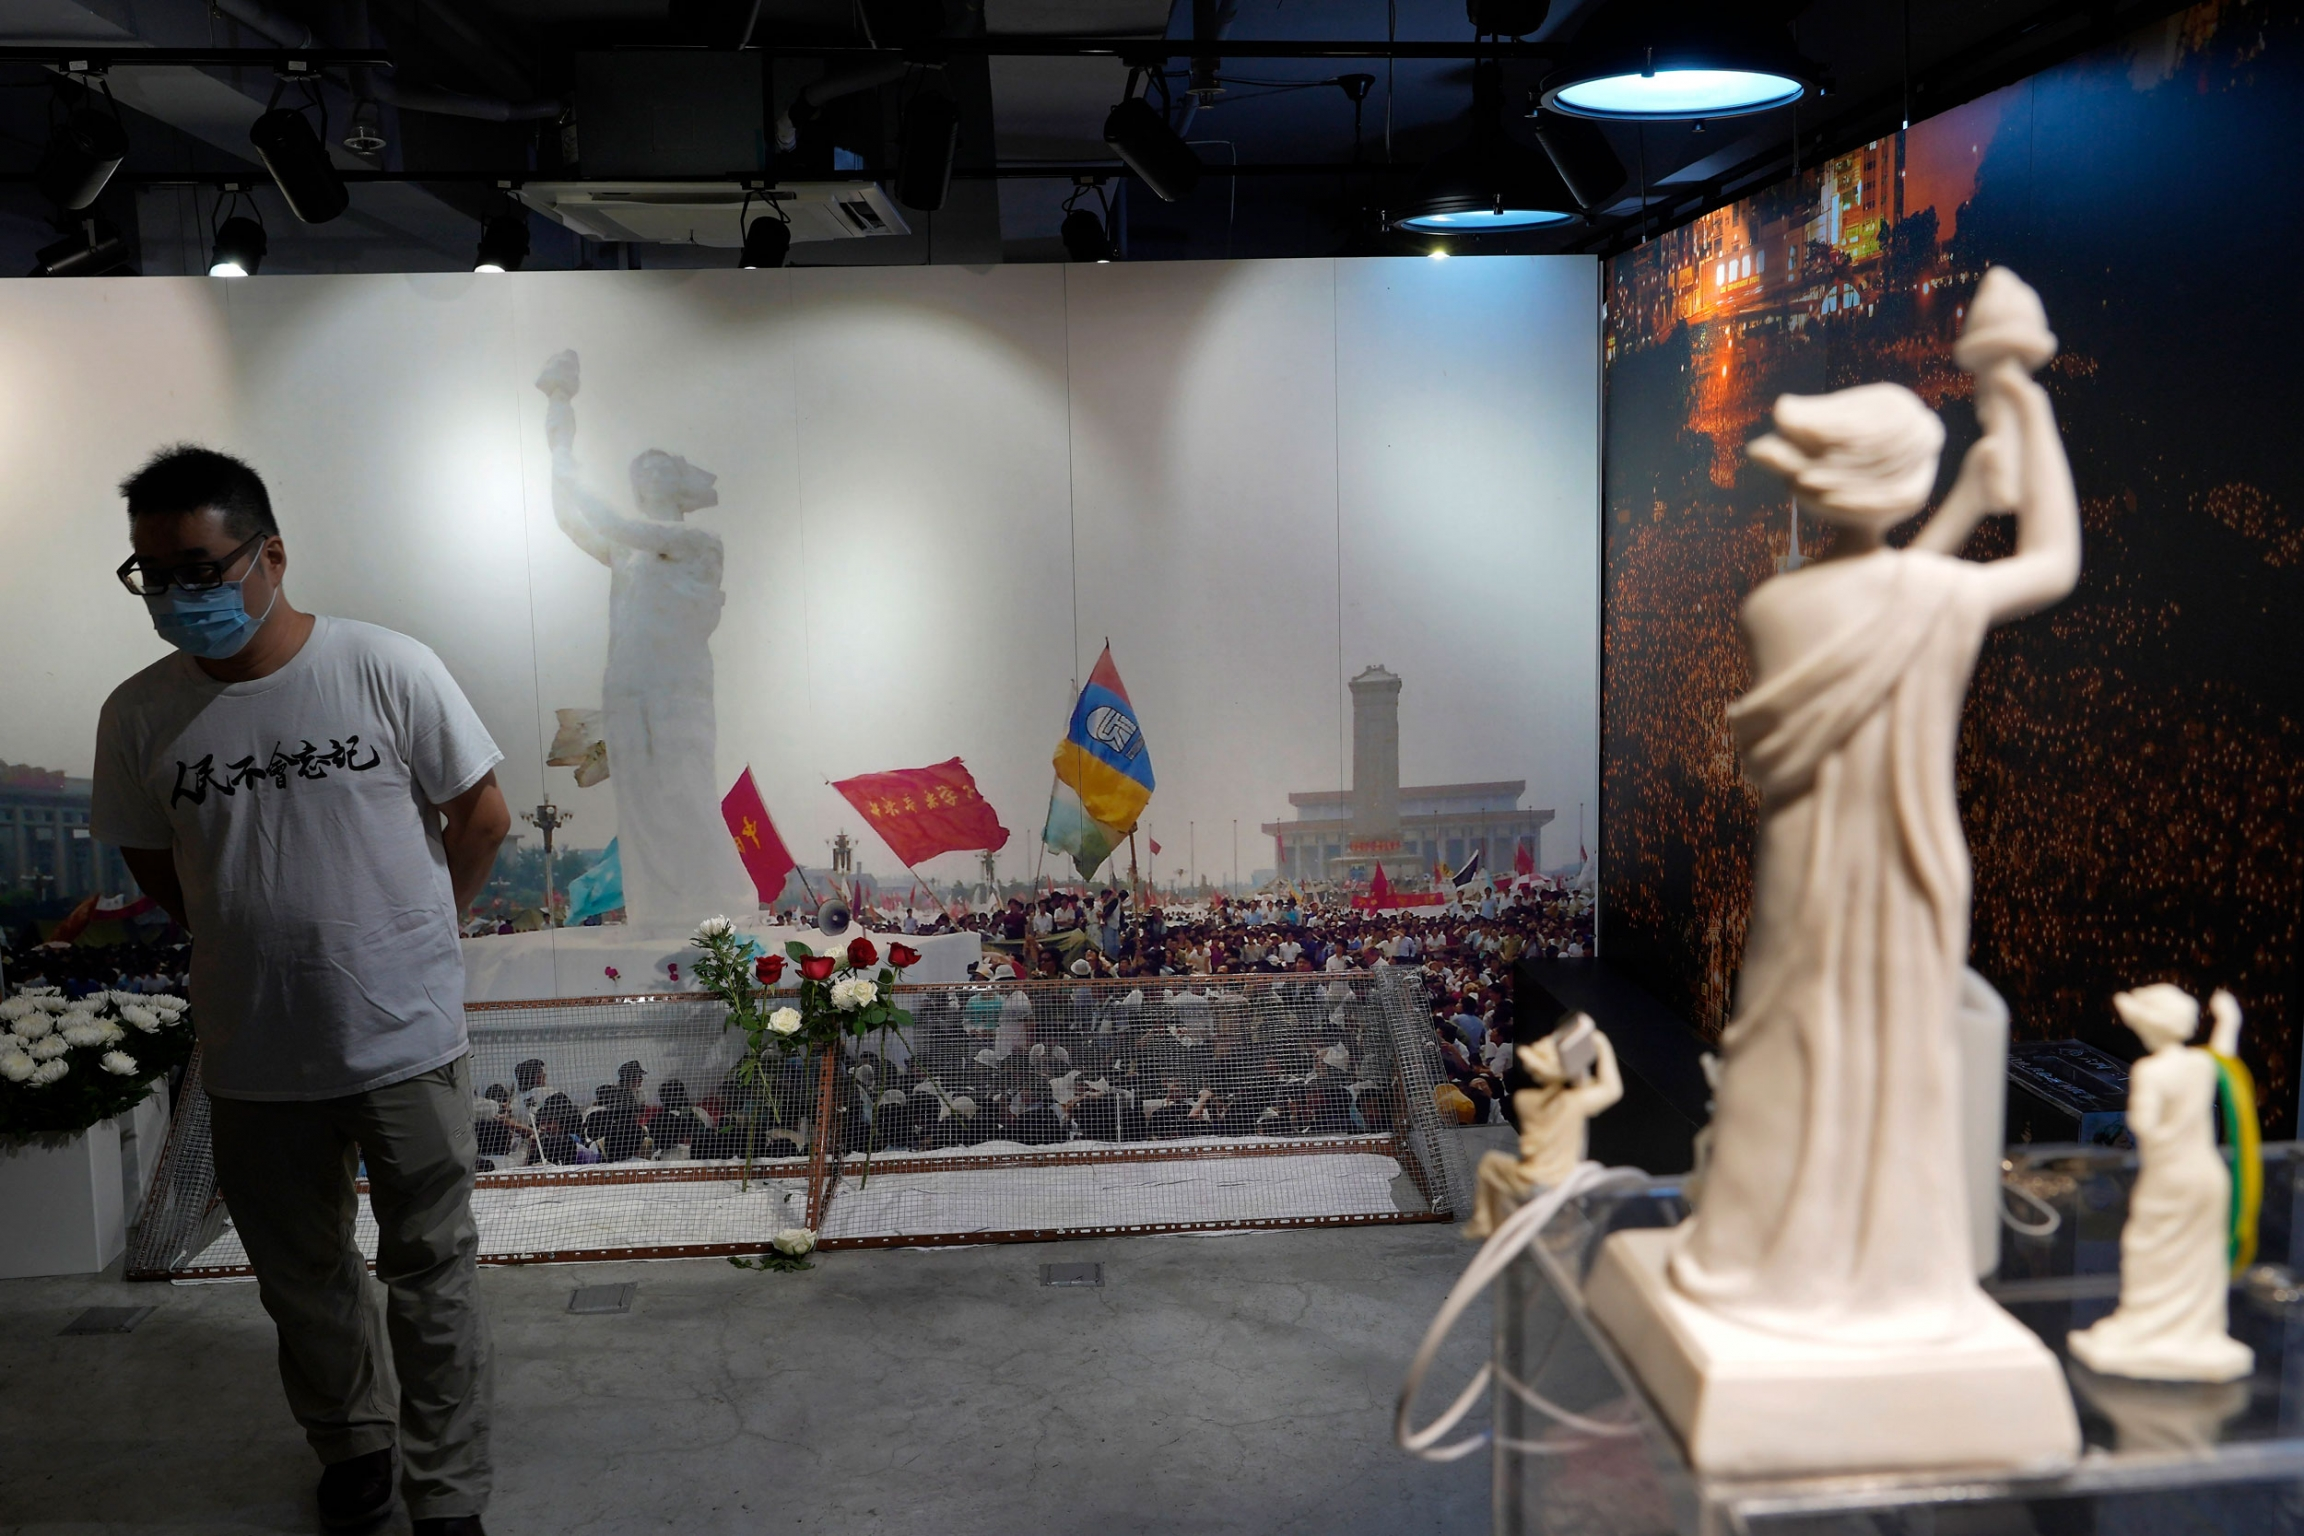 A man is shown wearing a white t-shirt, face mask and glasses while standing in front of a large wall-sized photograph depicting the Goddess of Democracy statue.